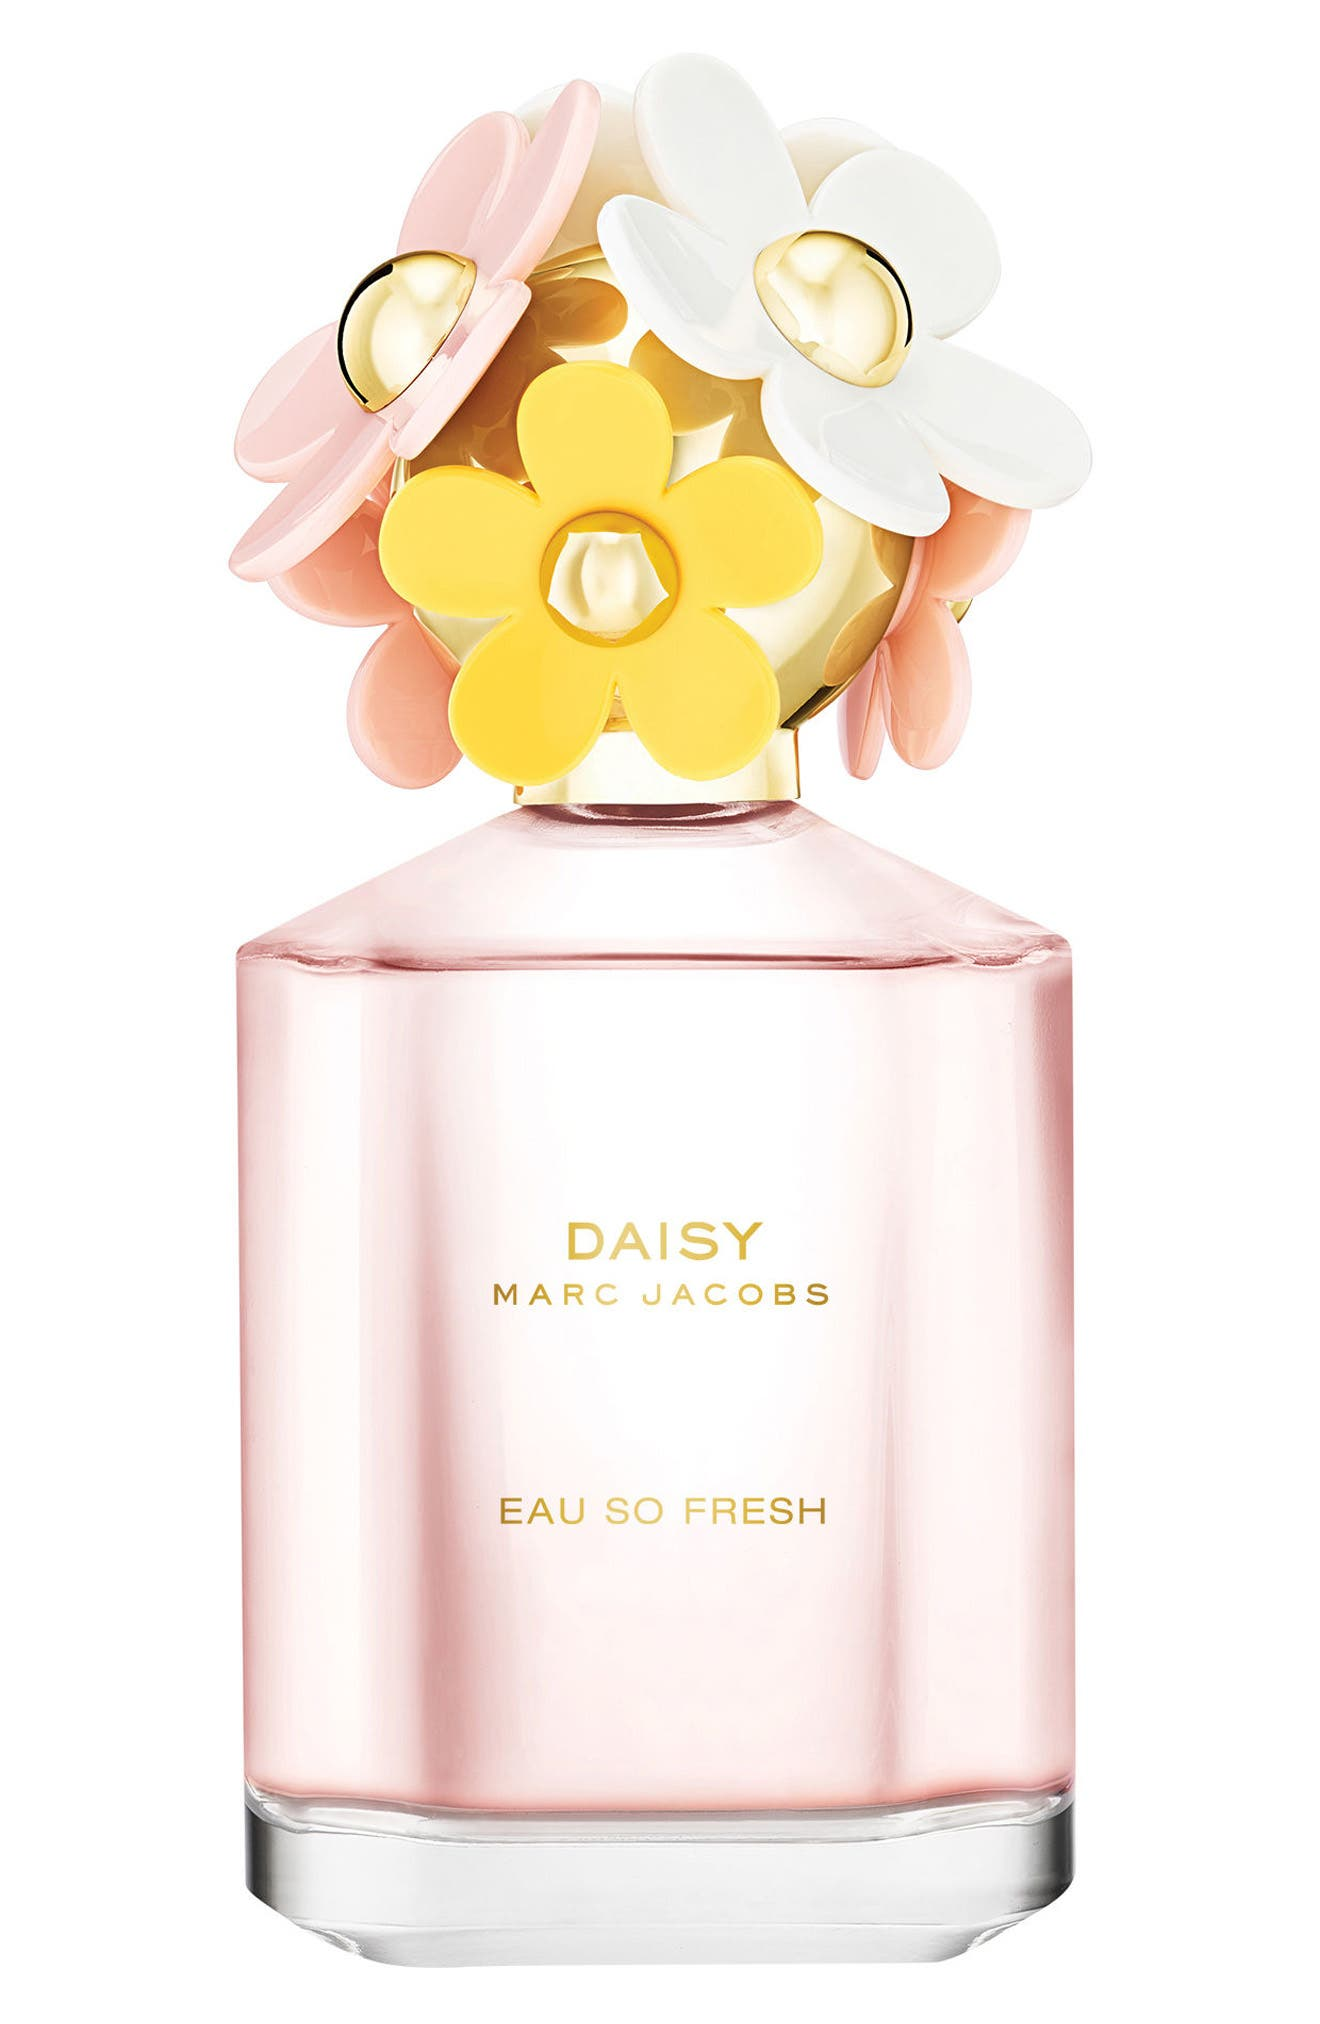 Alternate Image 1 Selected - MARC JACOBS Daisy Eau So Fresh Eau de Toilette